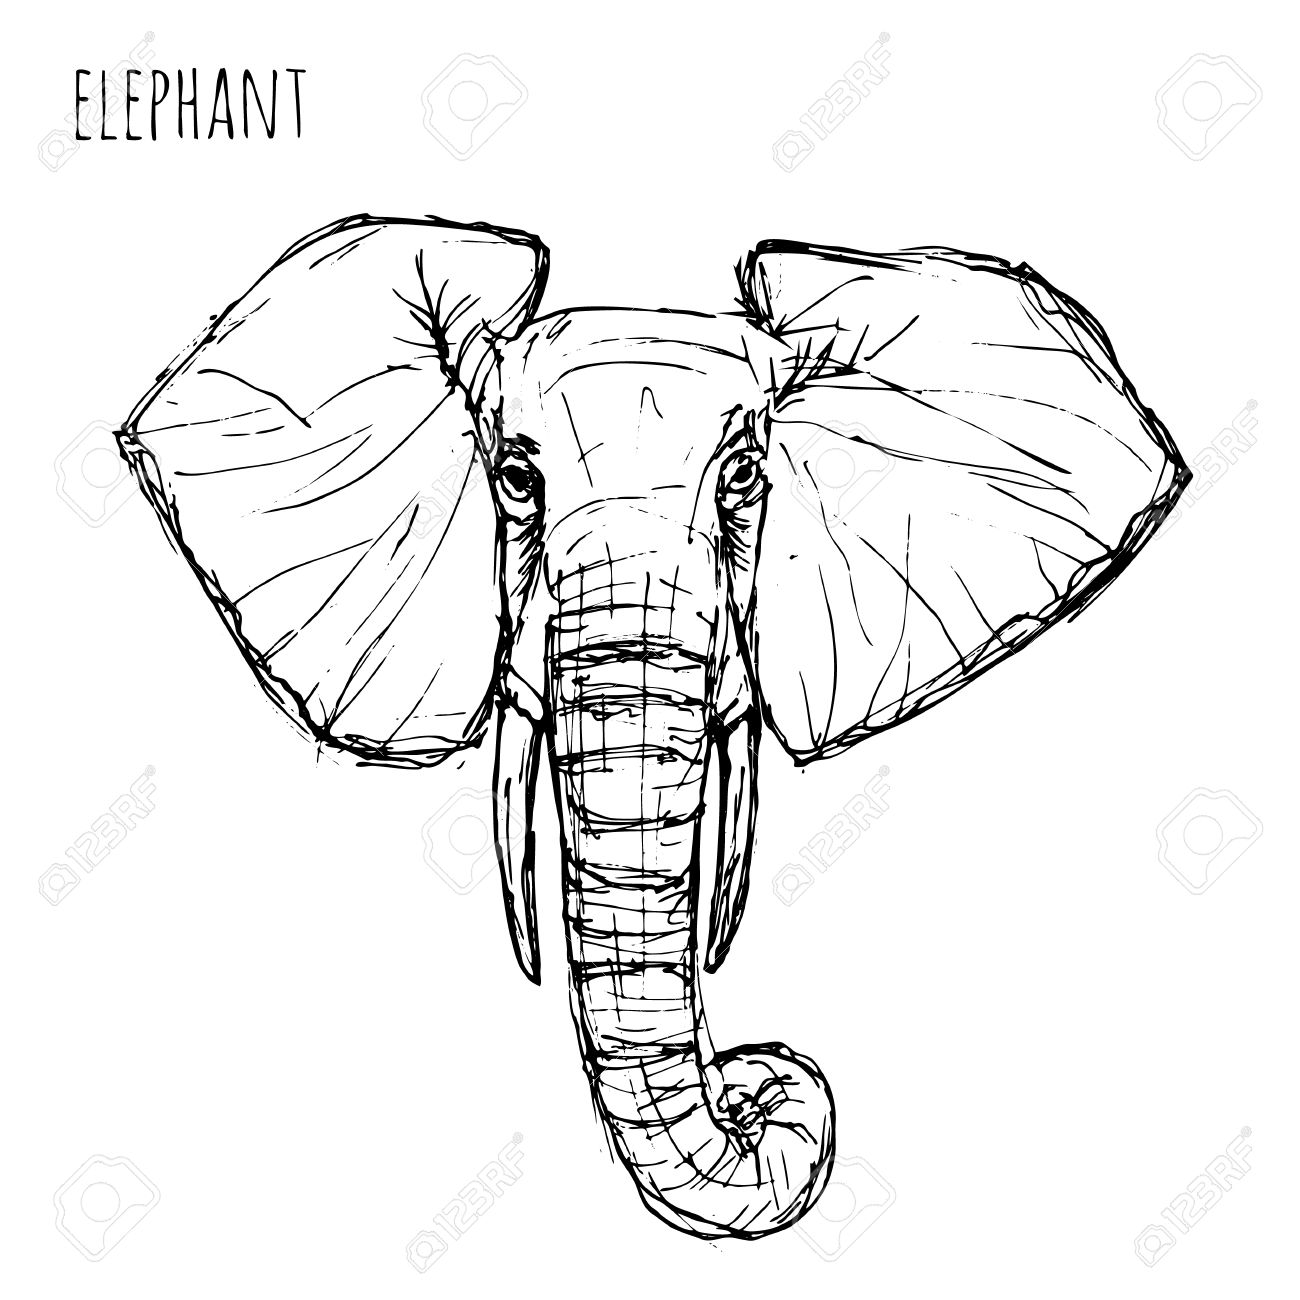 Vector wild animal black and white elephant face drawn pen and ink on a white background vector illustration